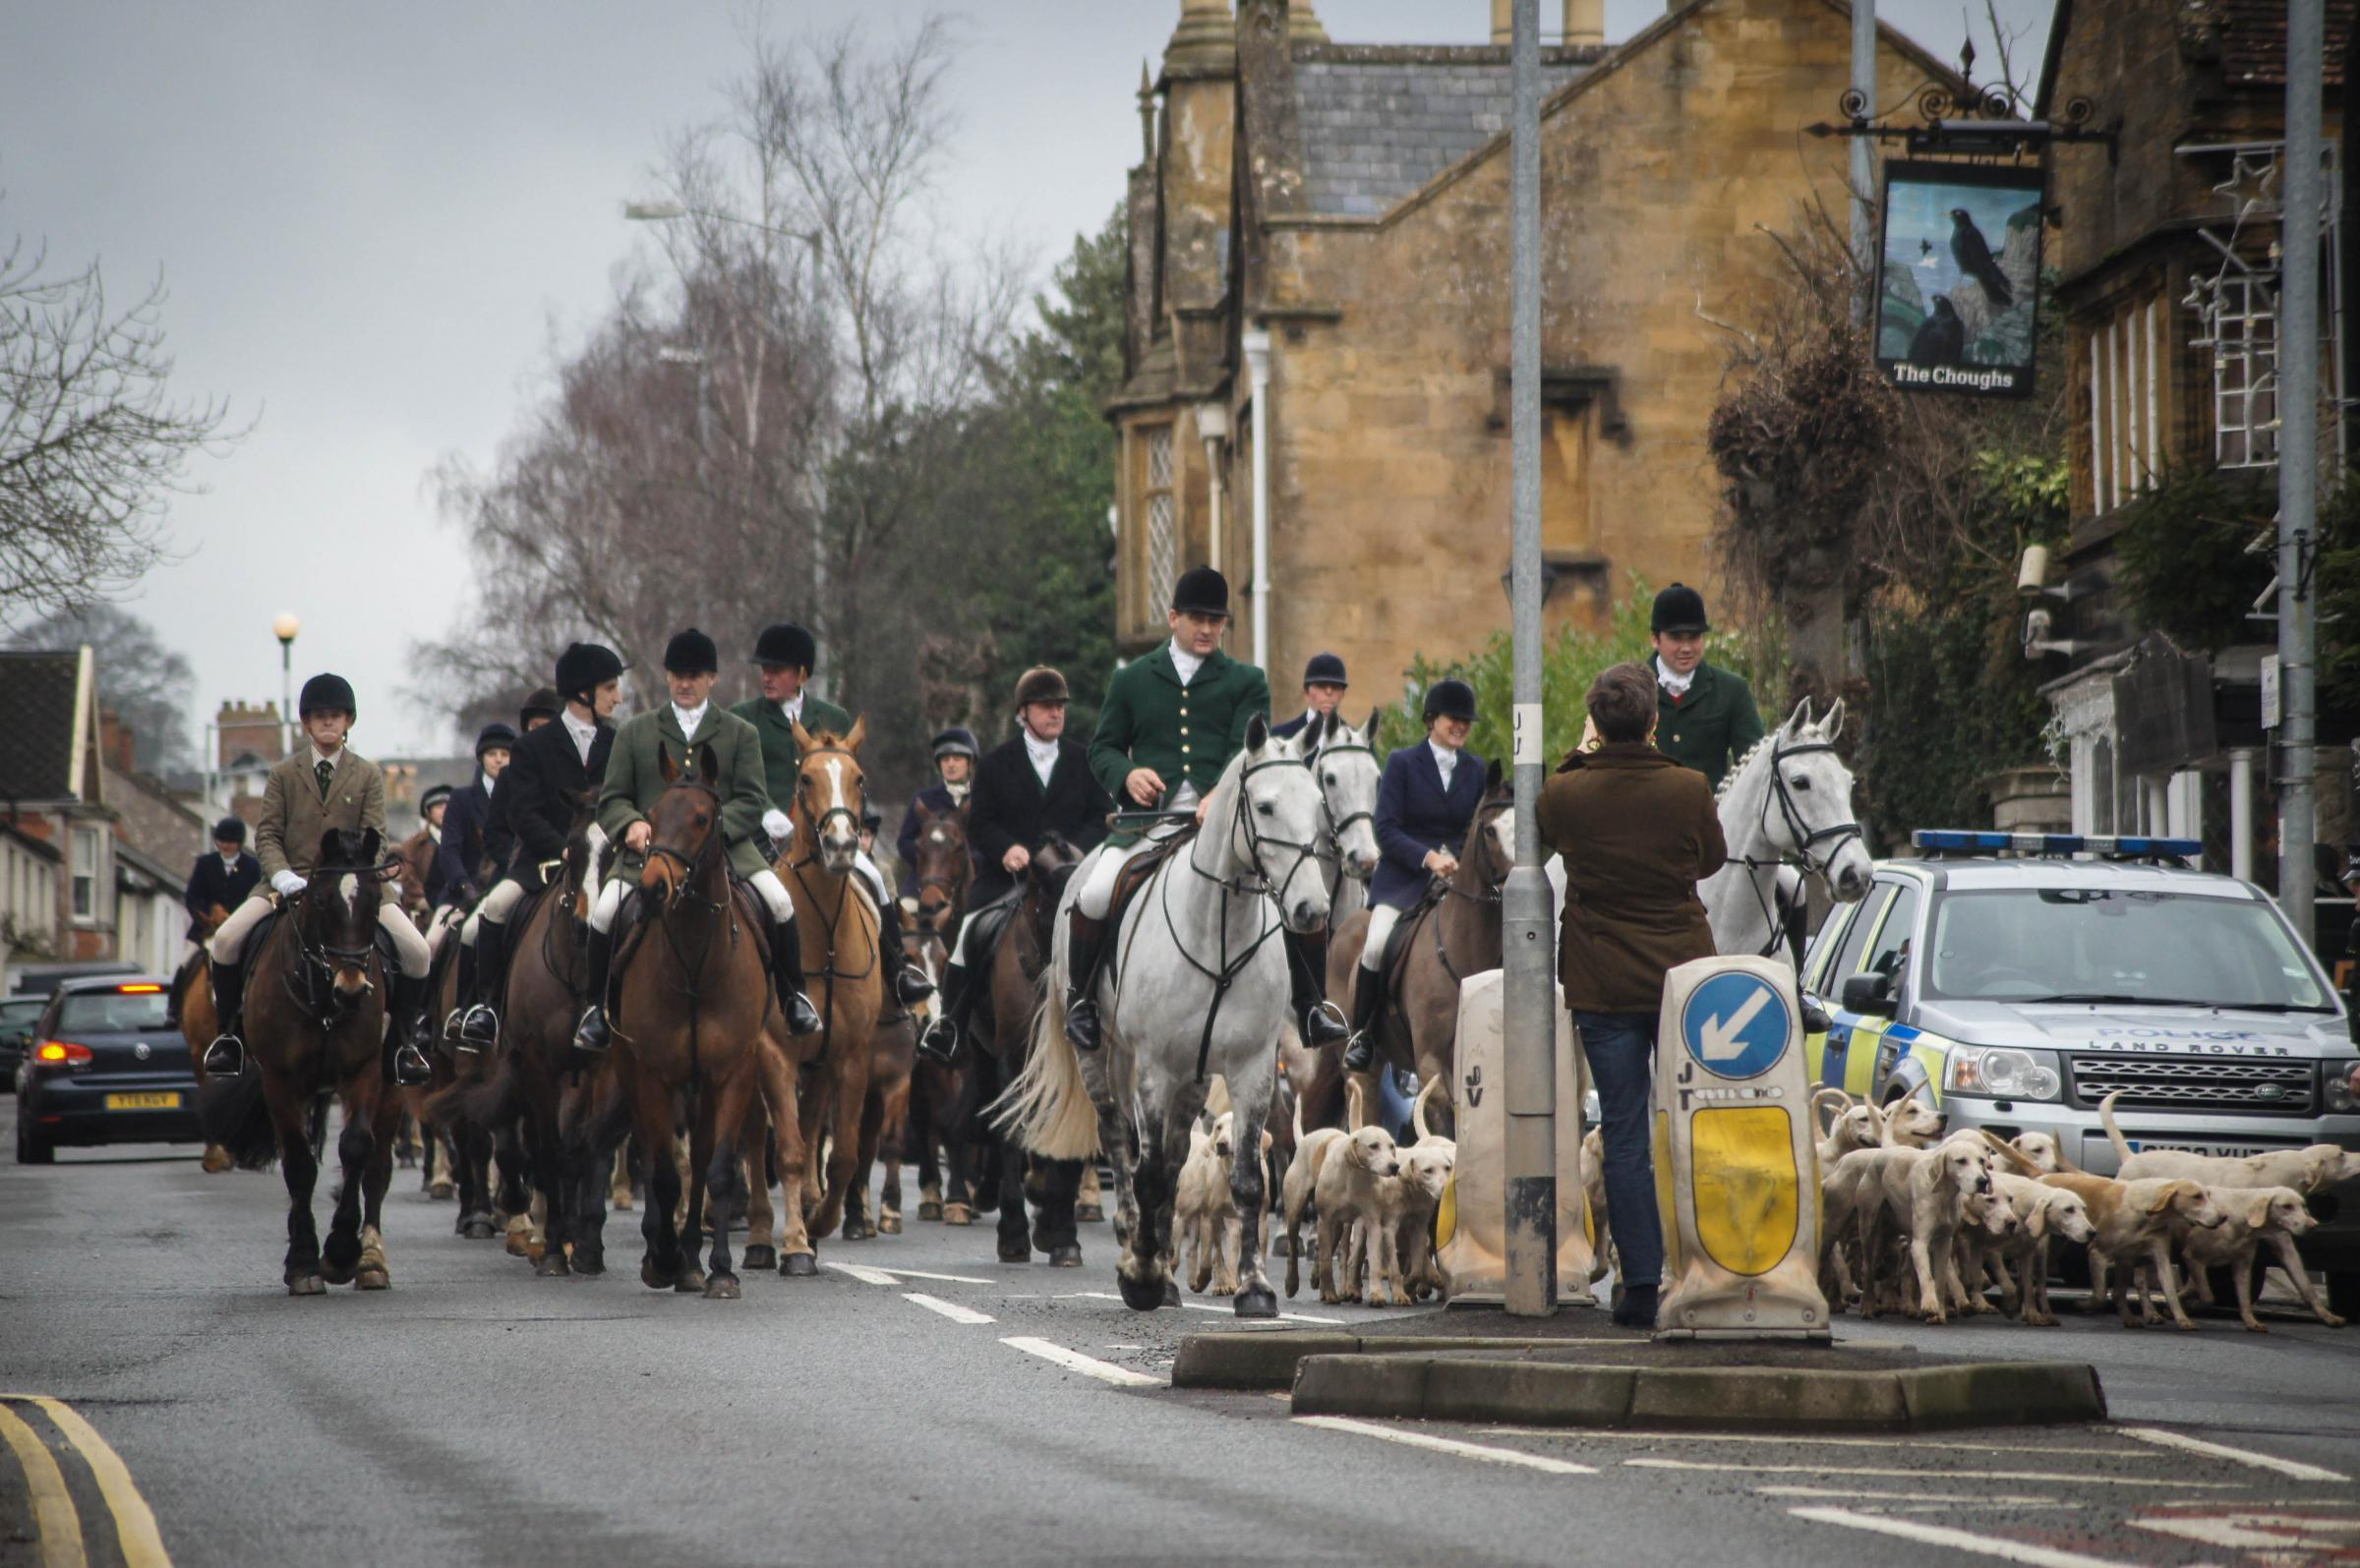 ON THE HUNT: Cotley Harriers riders gathered for the Boxing Day hunt